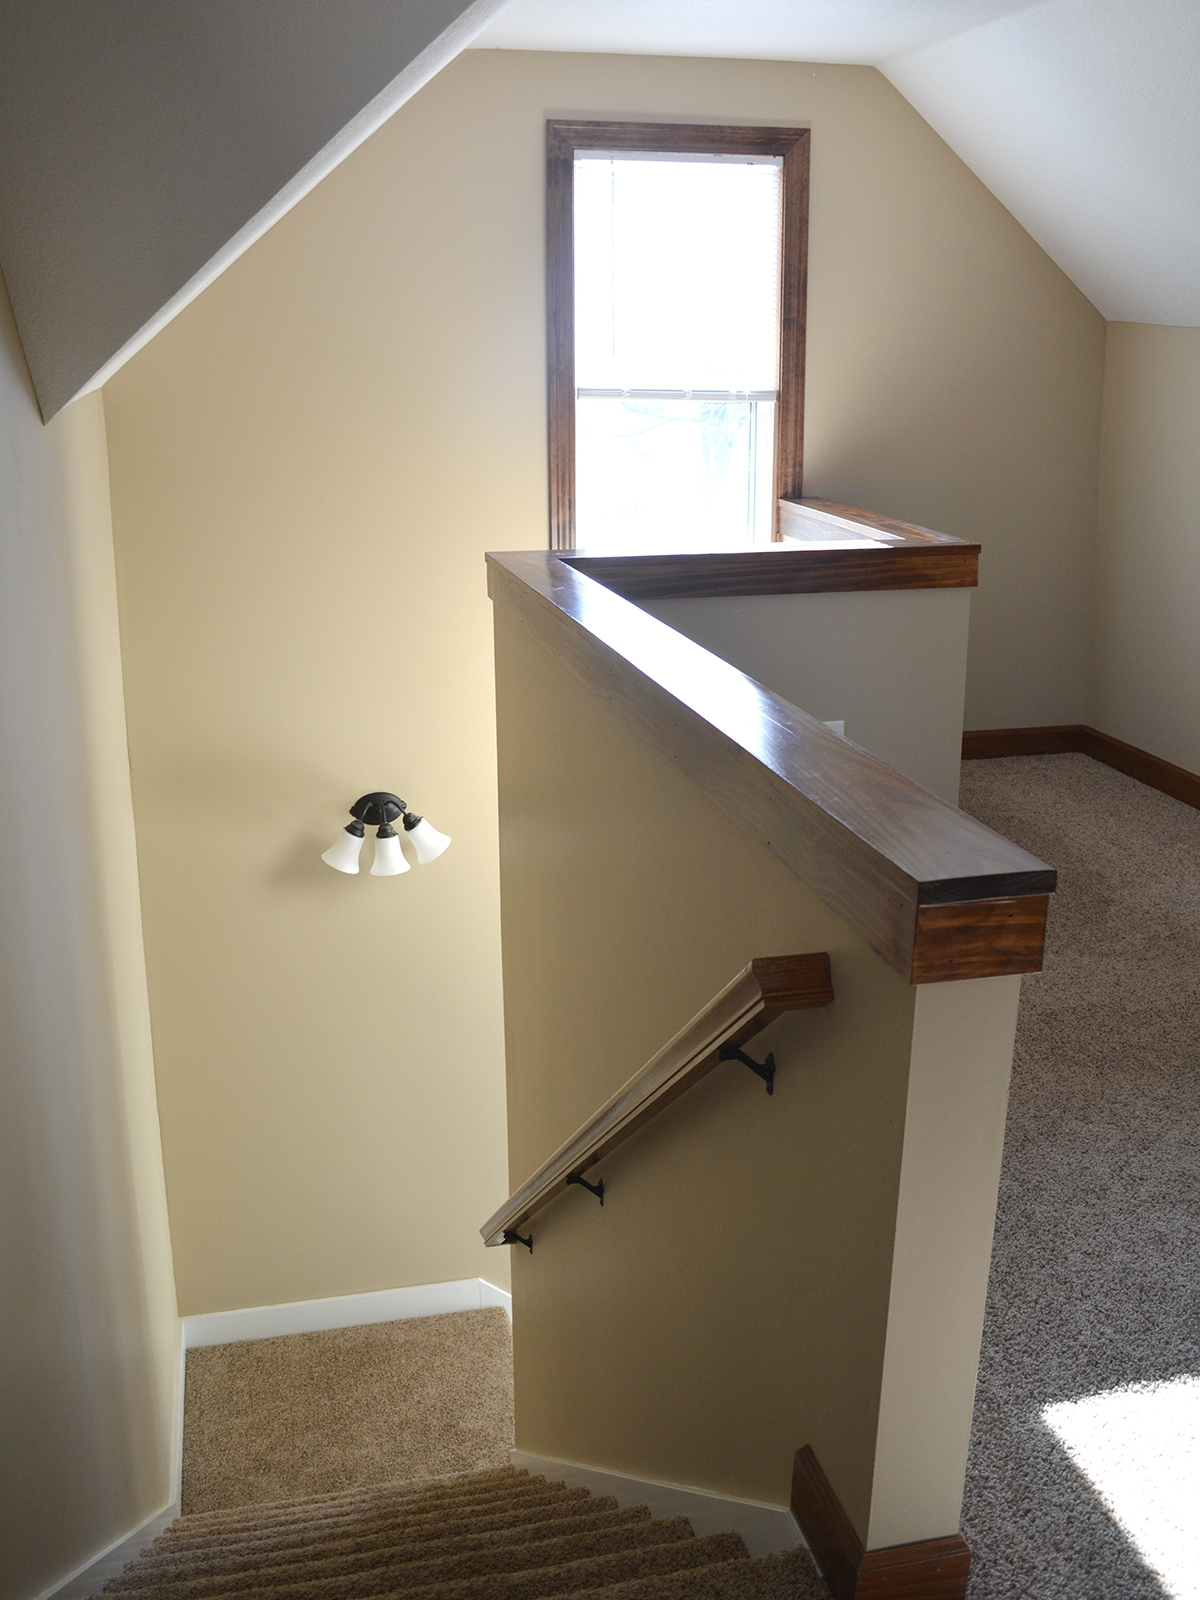 AFTER: Brand new turning stair case in the middle of the house with landing.